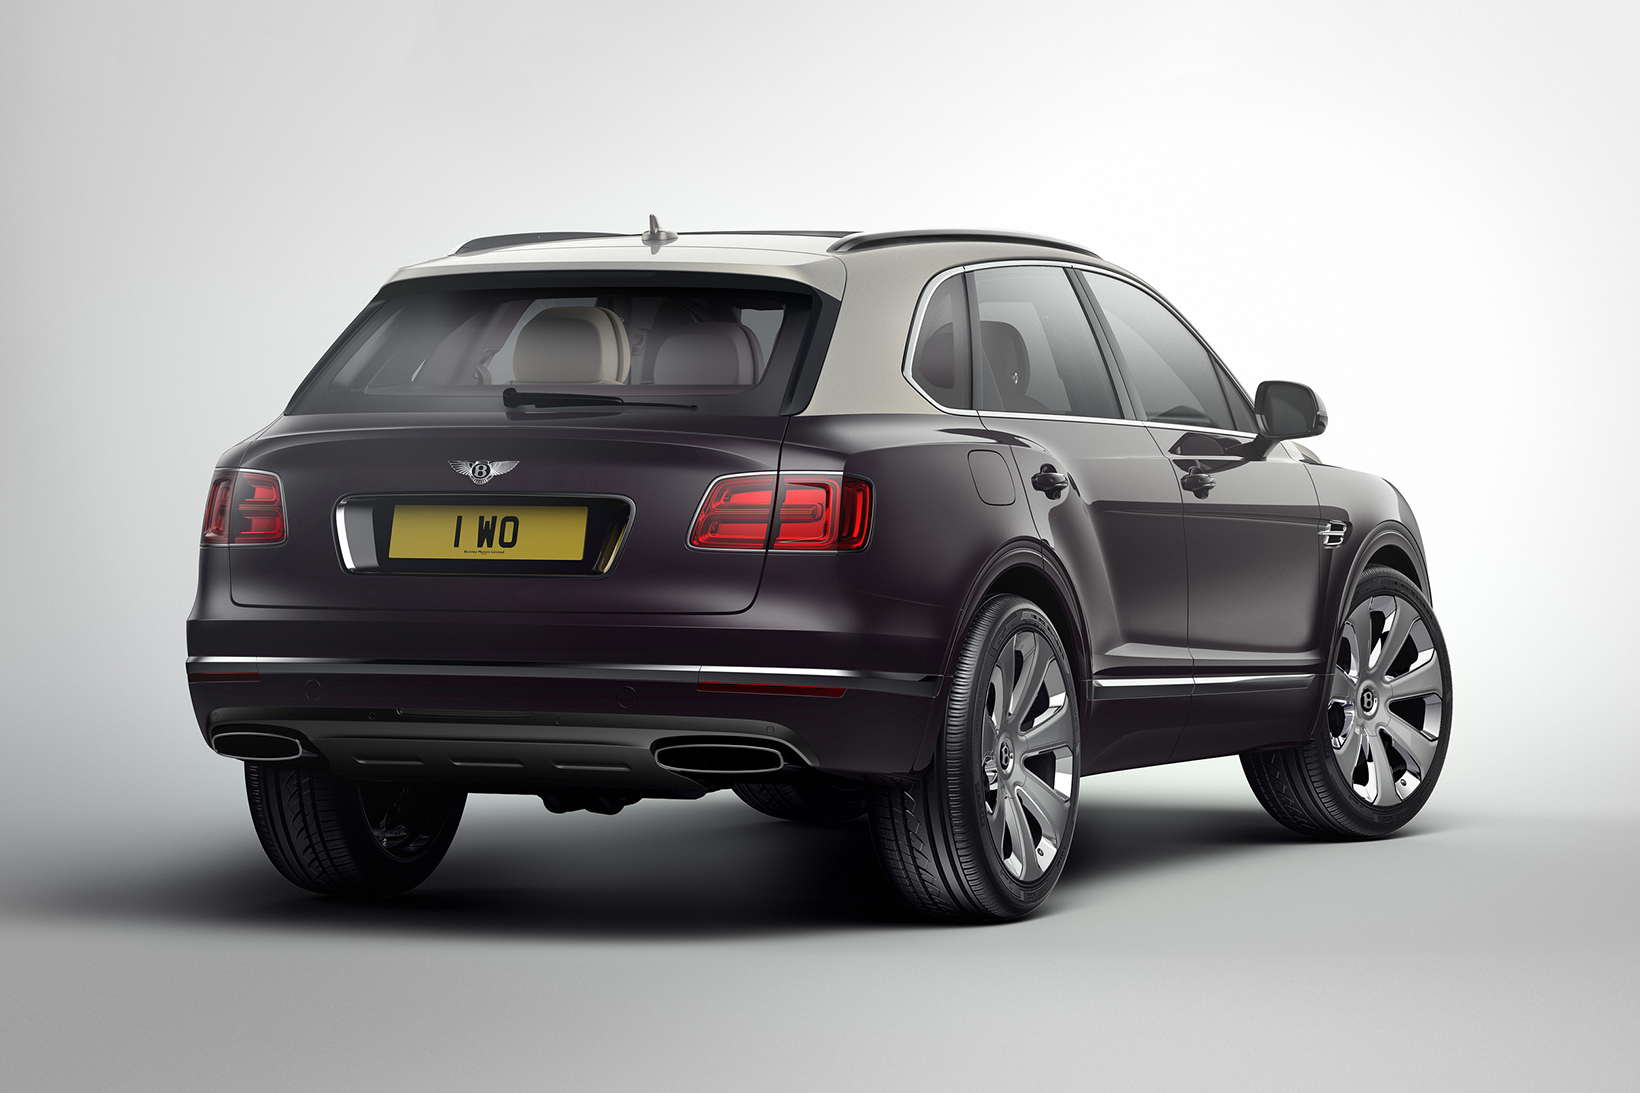 bentley bentayga mulliner luxury vehicle SUV